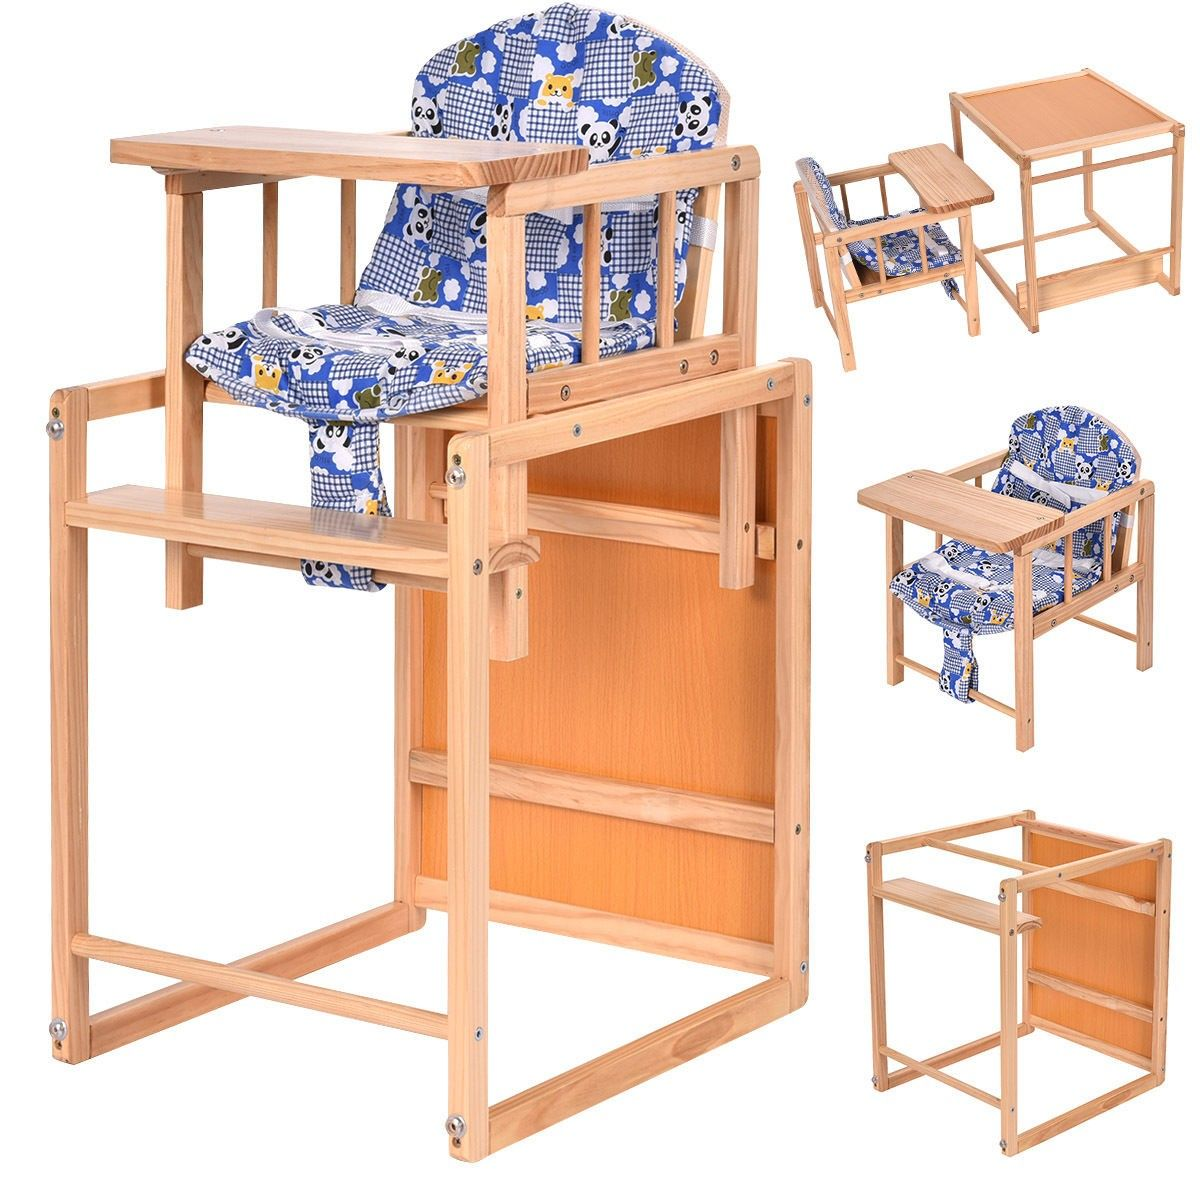 Brilliant 2 In 1 Solid Wooden Baby High Chair Feeding Infant Toddler Caraccident5 Cool Chair Designs And Ideas Caraccident5Info